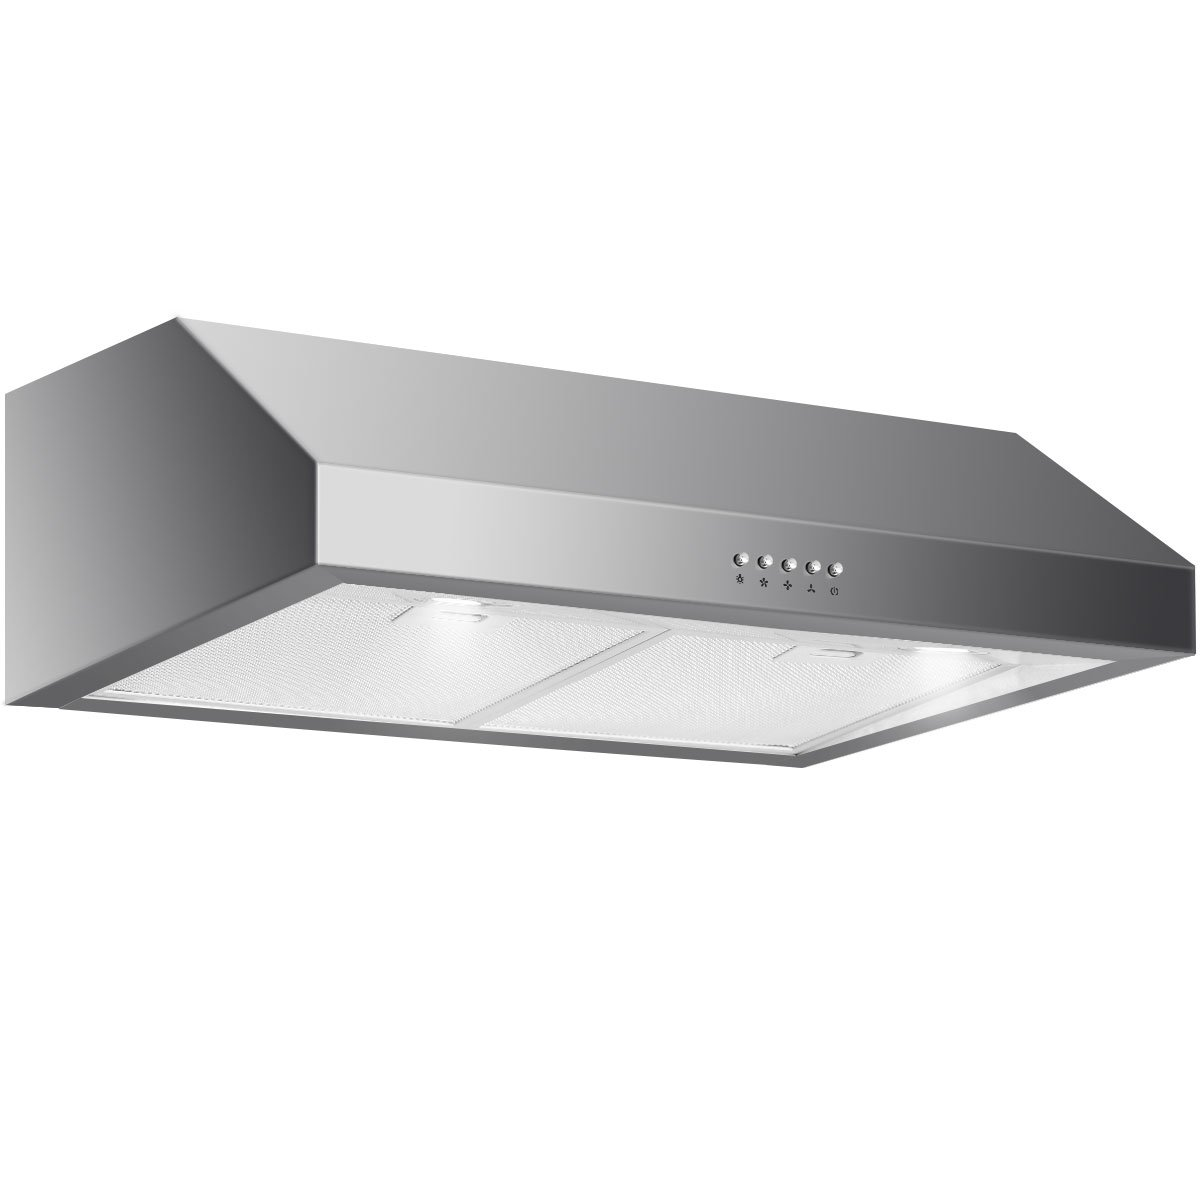 Wall Mount /& Tempered Glass COSTWAY 30 Wall Mount Range Hood Stainless Steel Kitchen Cooking Vent Fan with LED Light